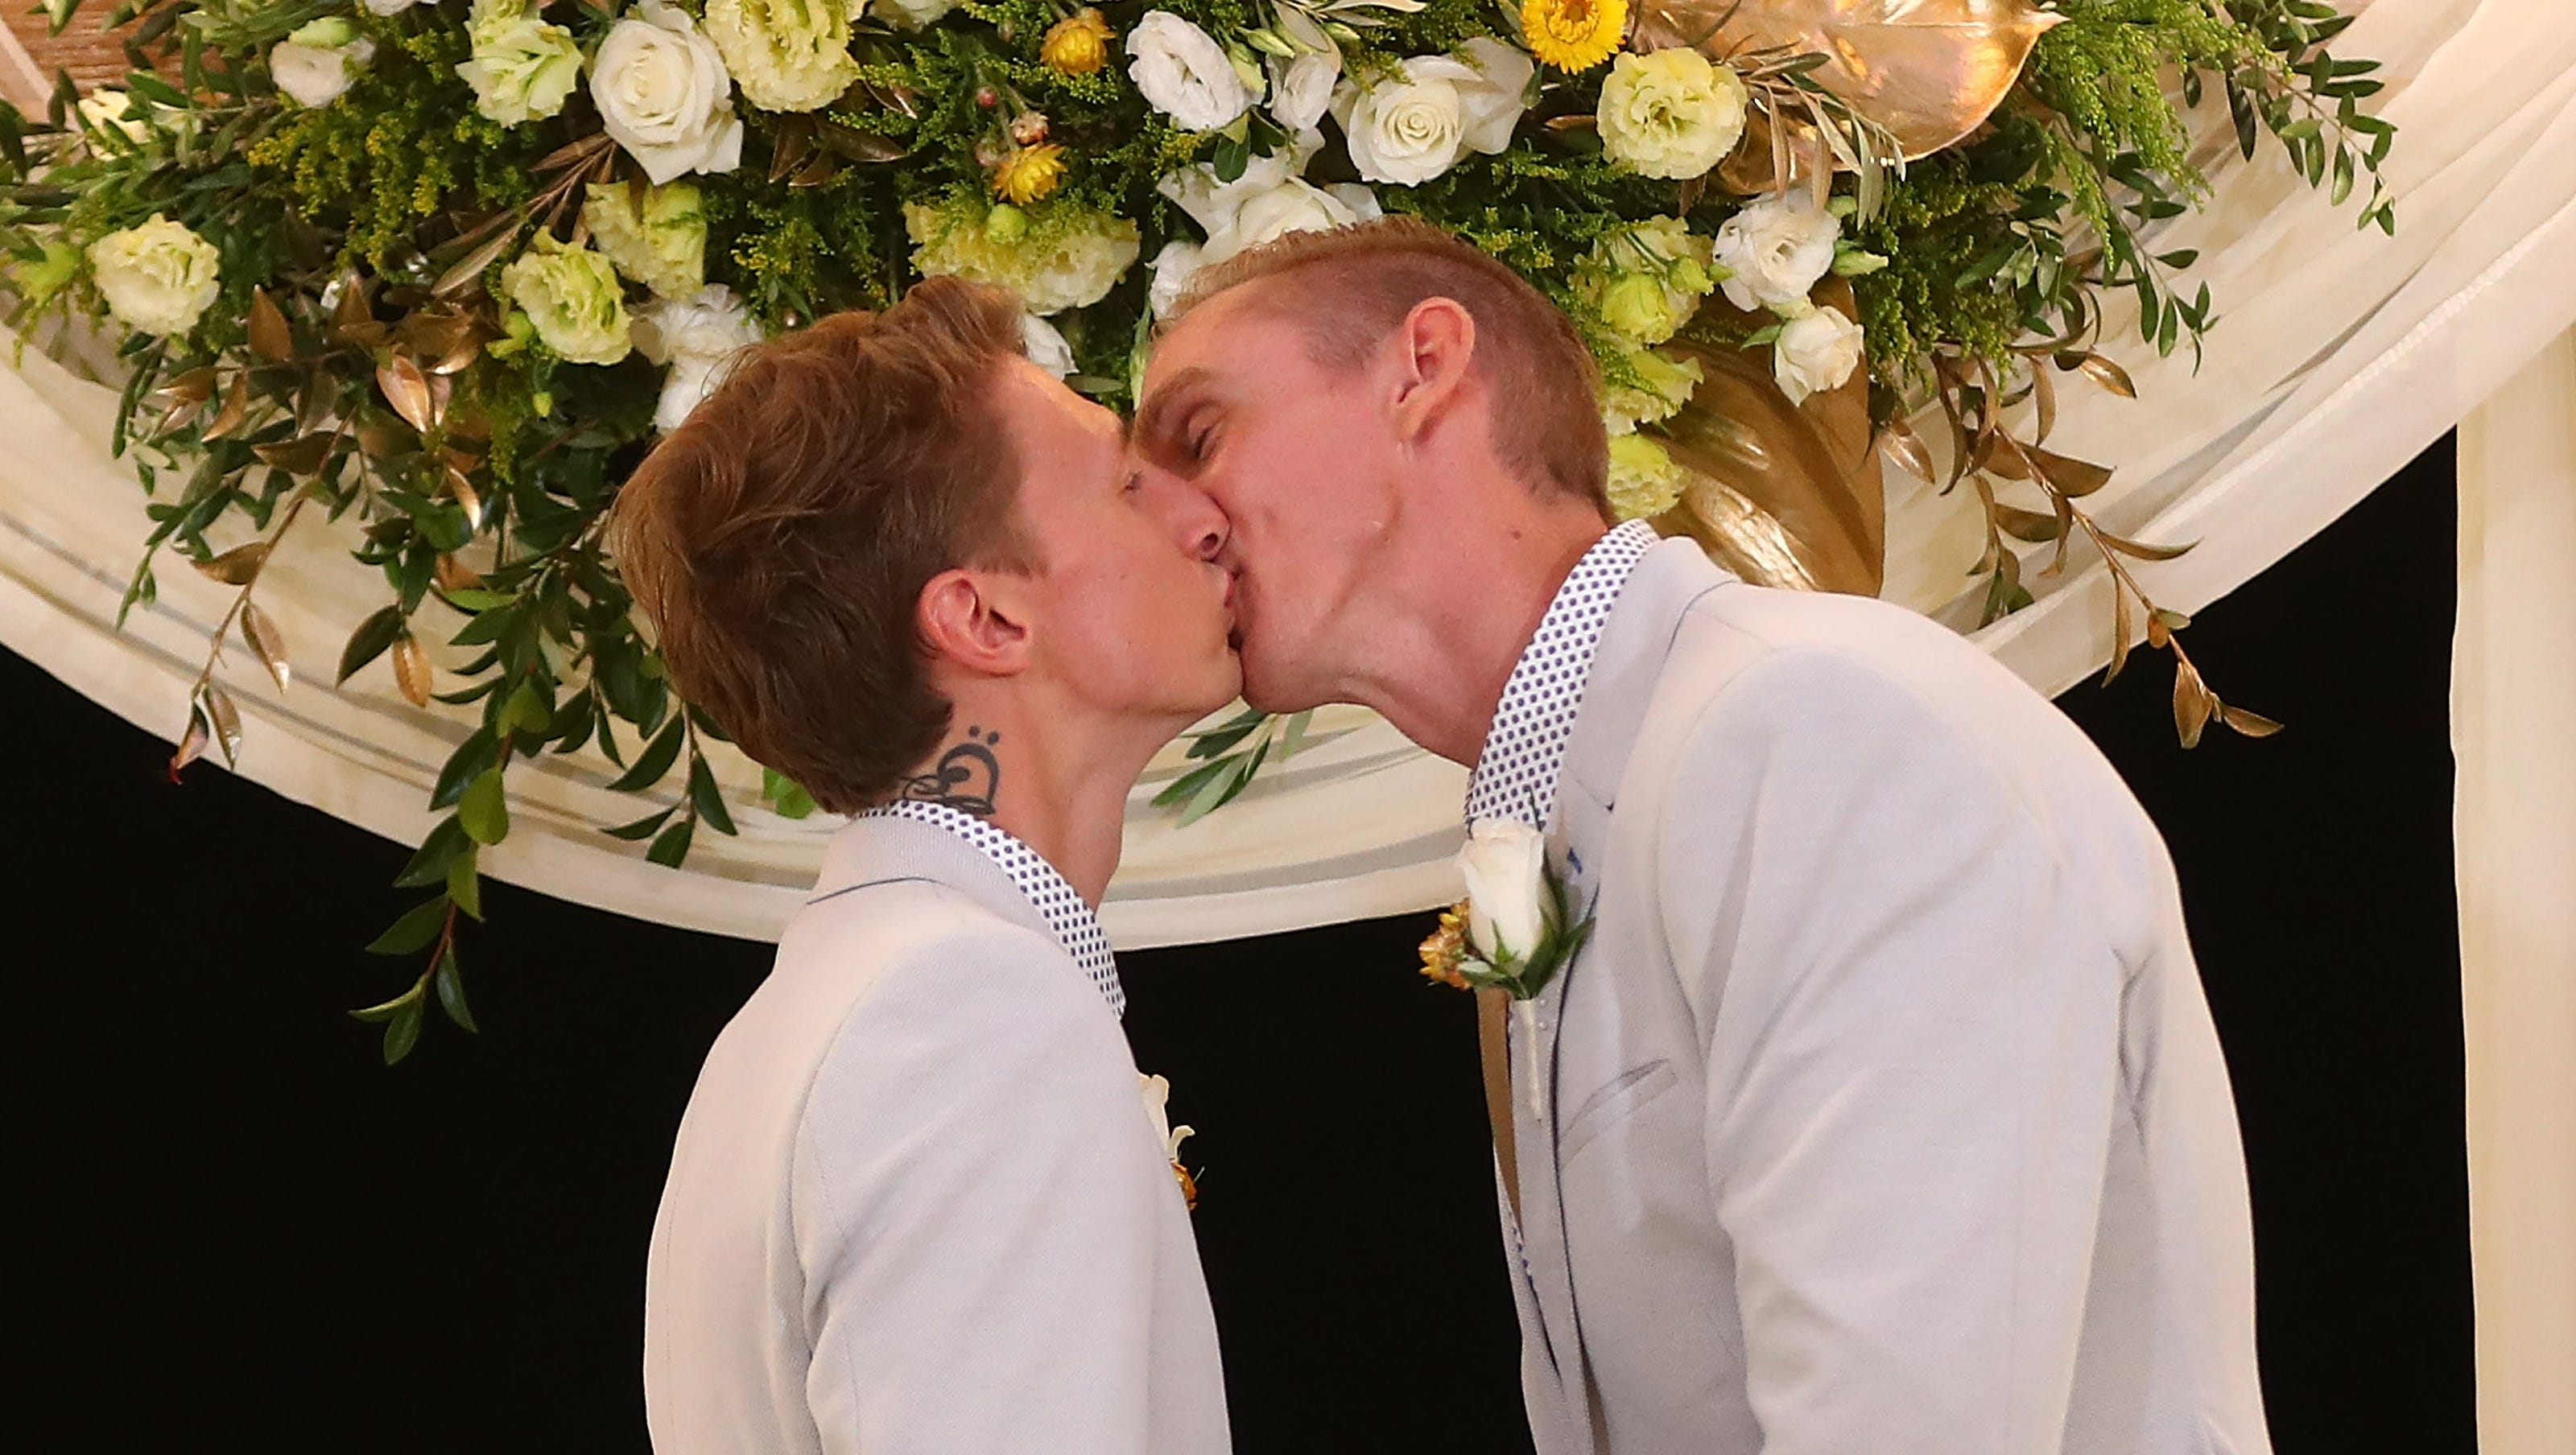 Gay and lesbian rights to marry